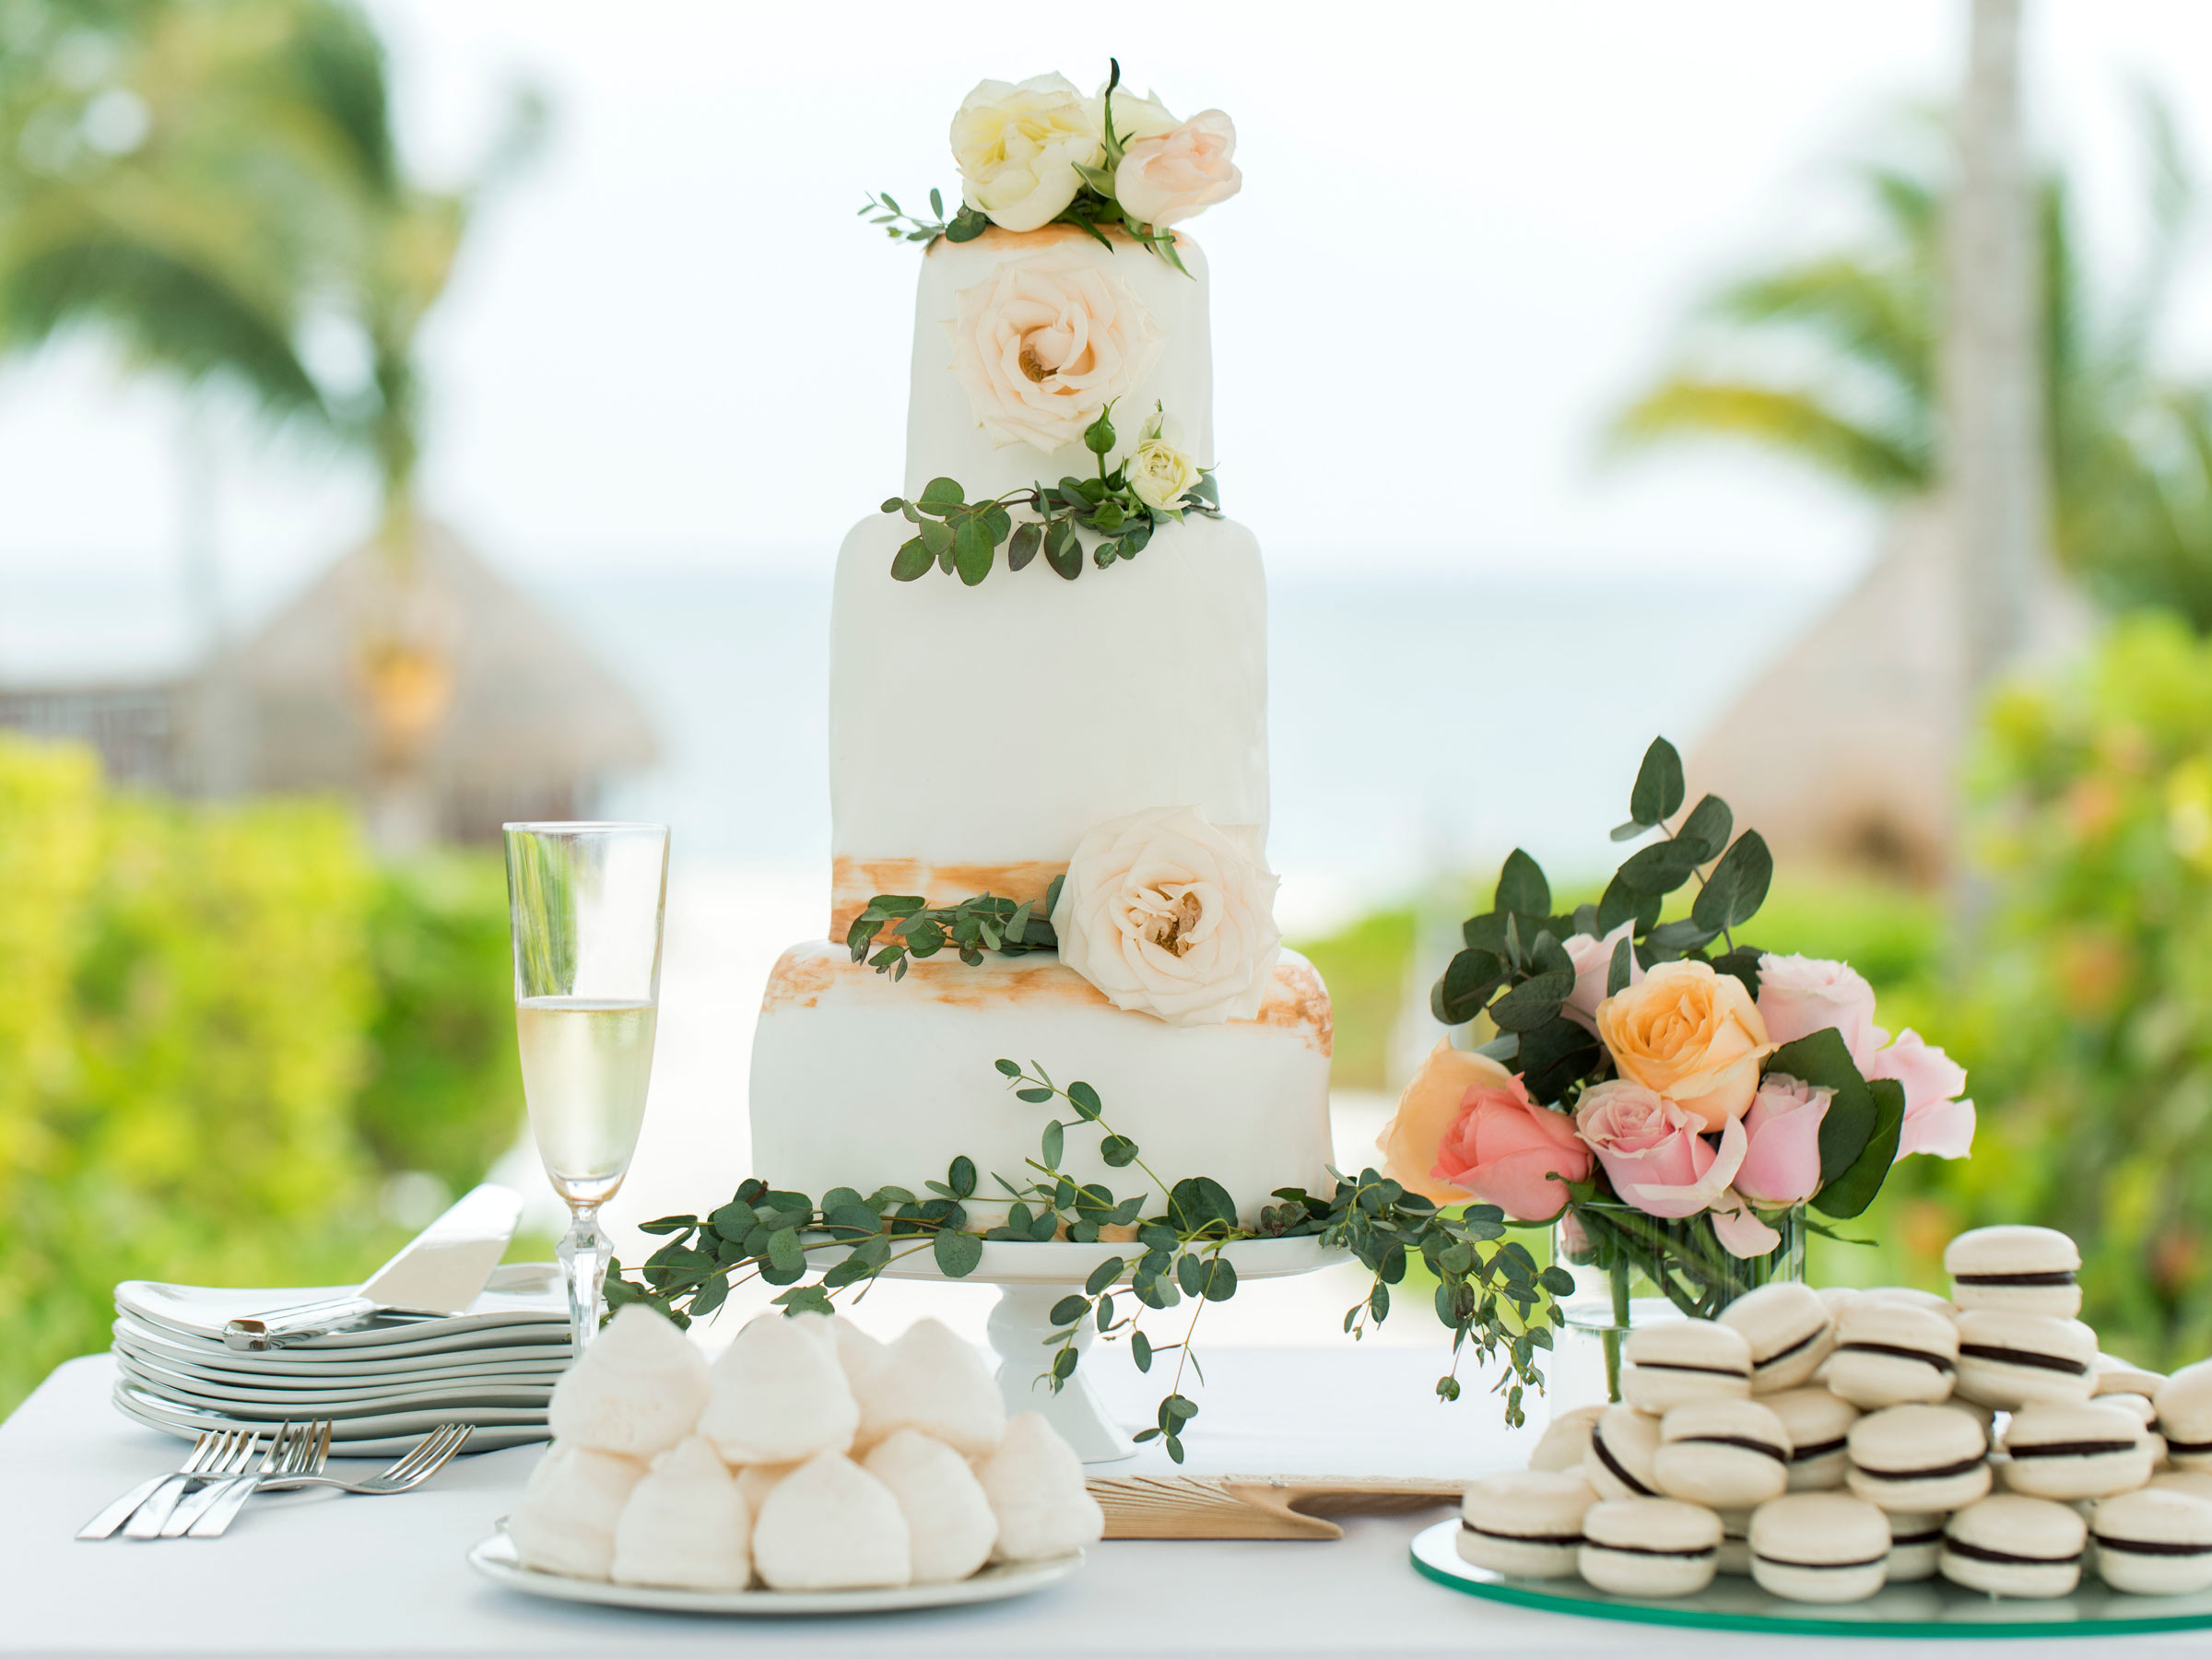 Riviera Maya Wedding Cake on the Beach